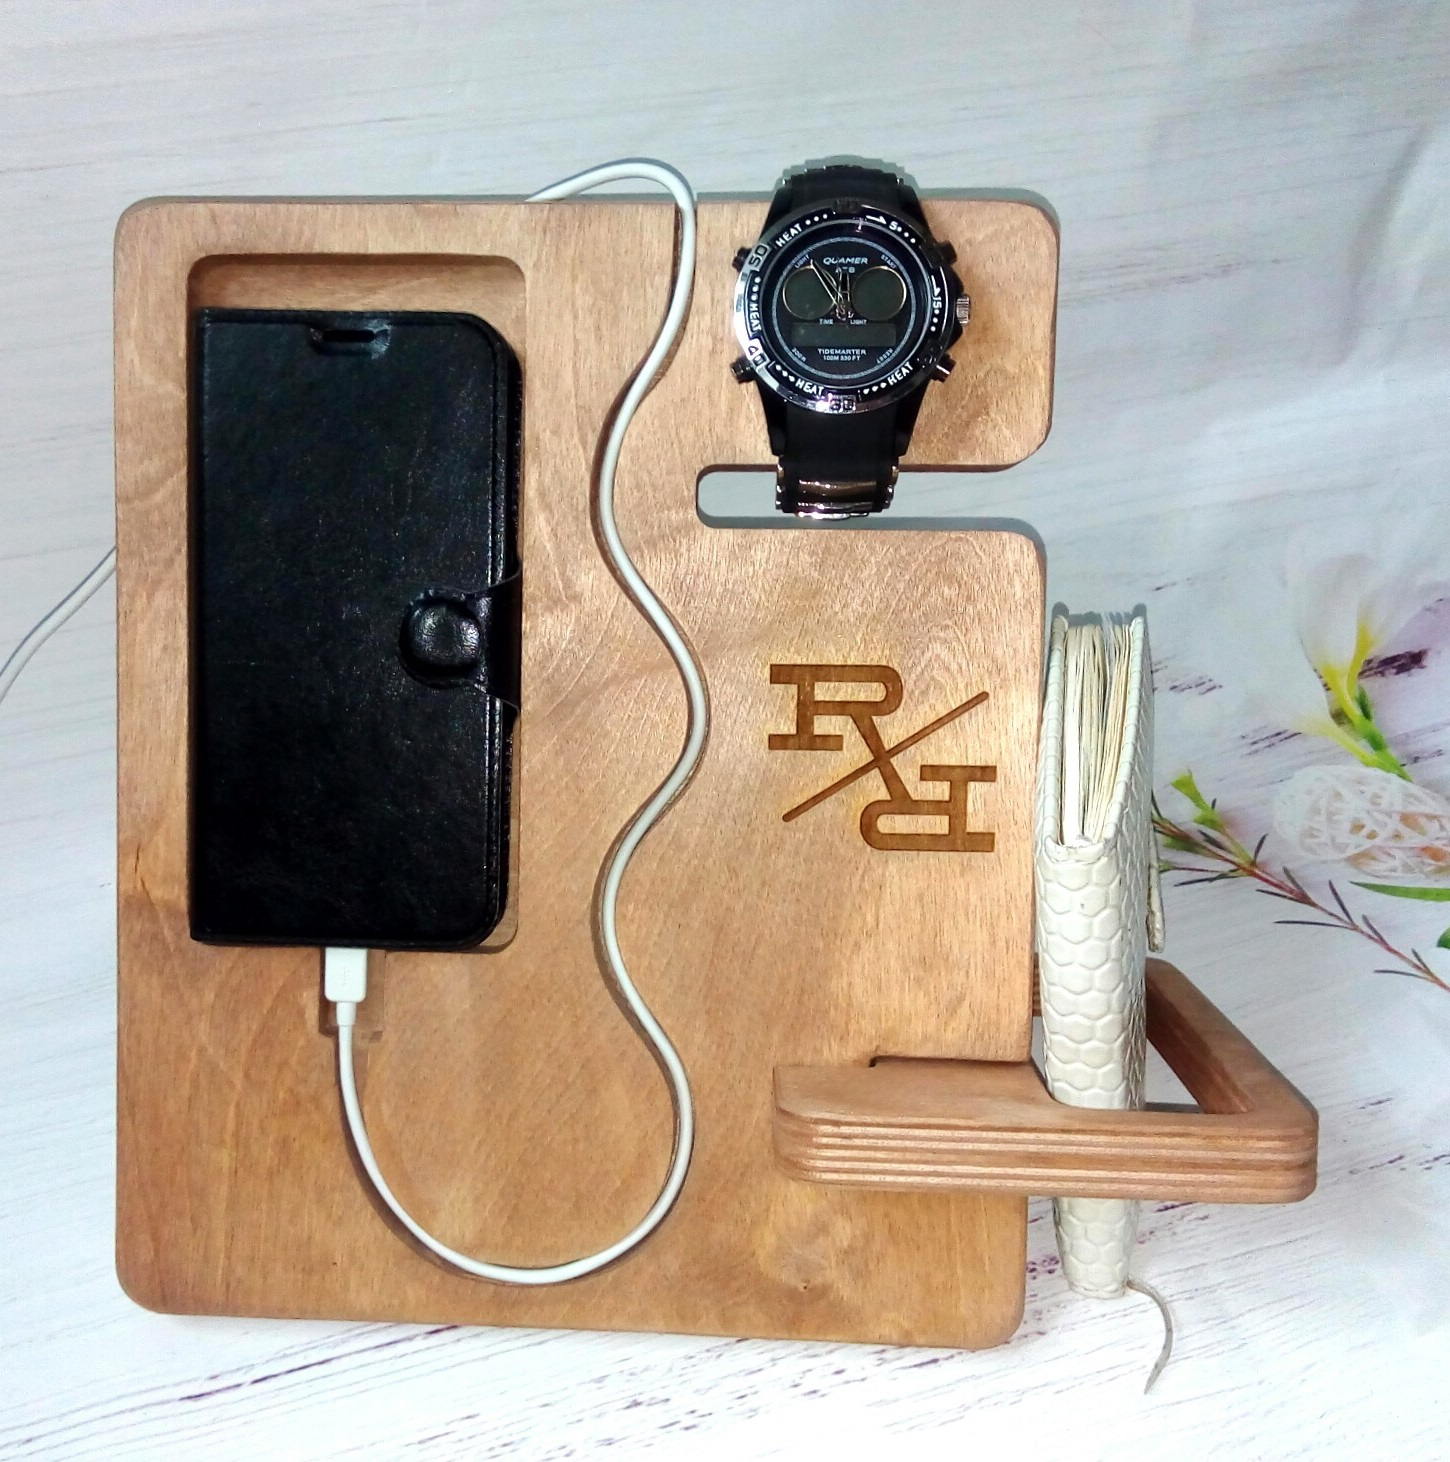 Phone Wallet Watch Organizer Plywood For Laser Cut Free CDR Vectors Art